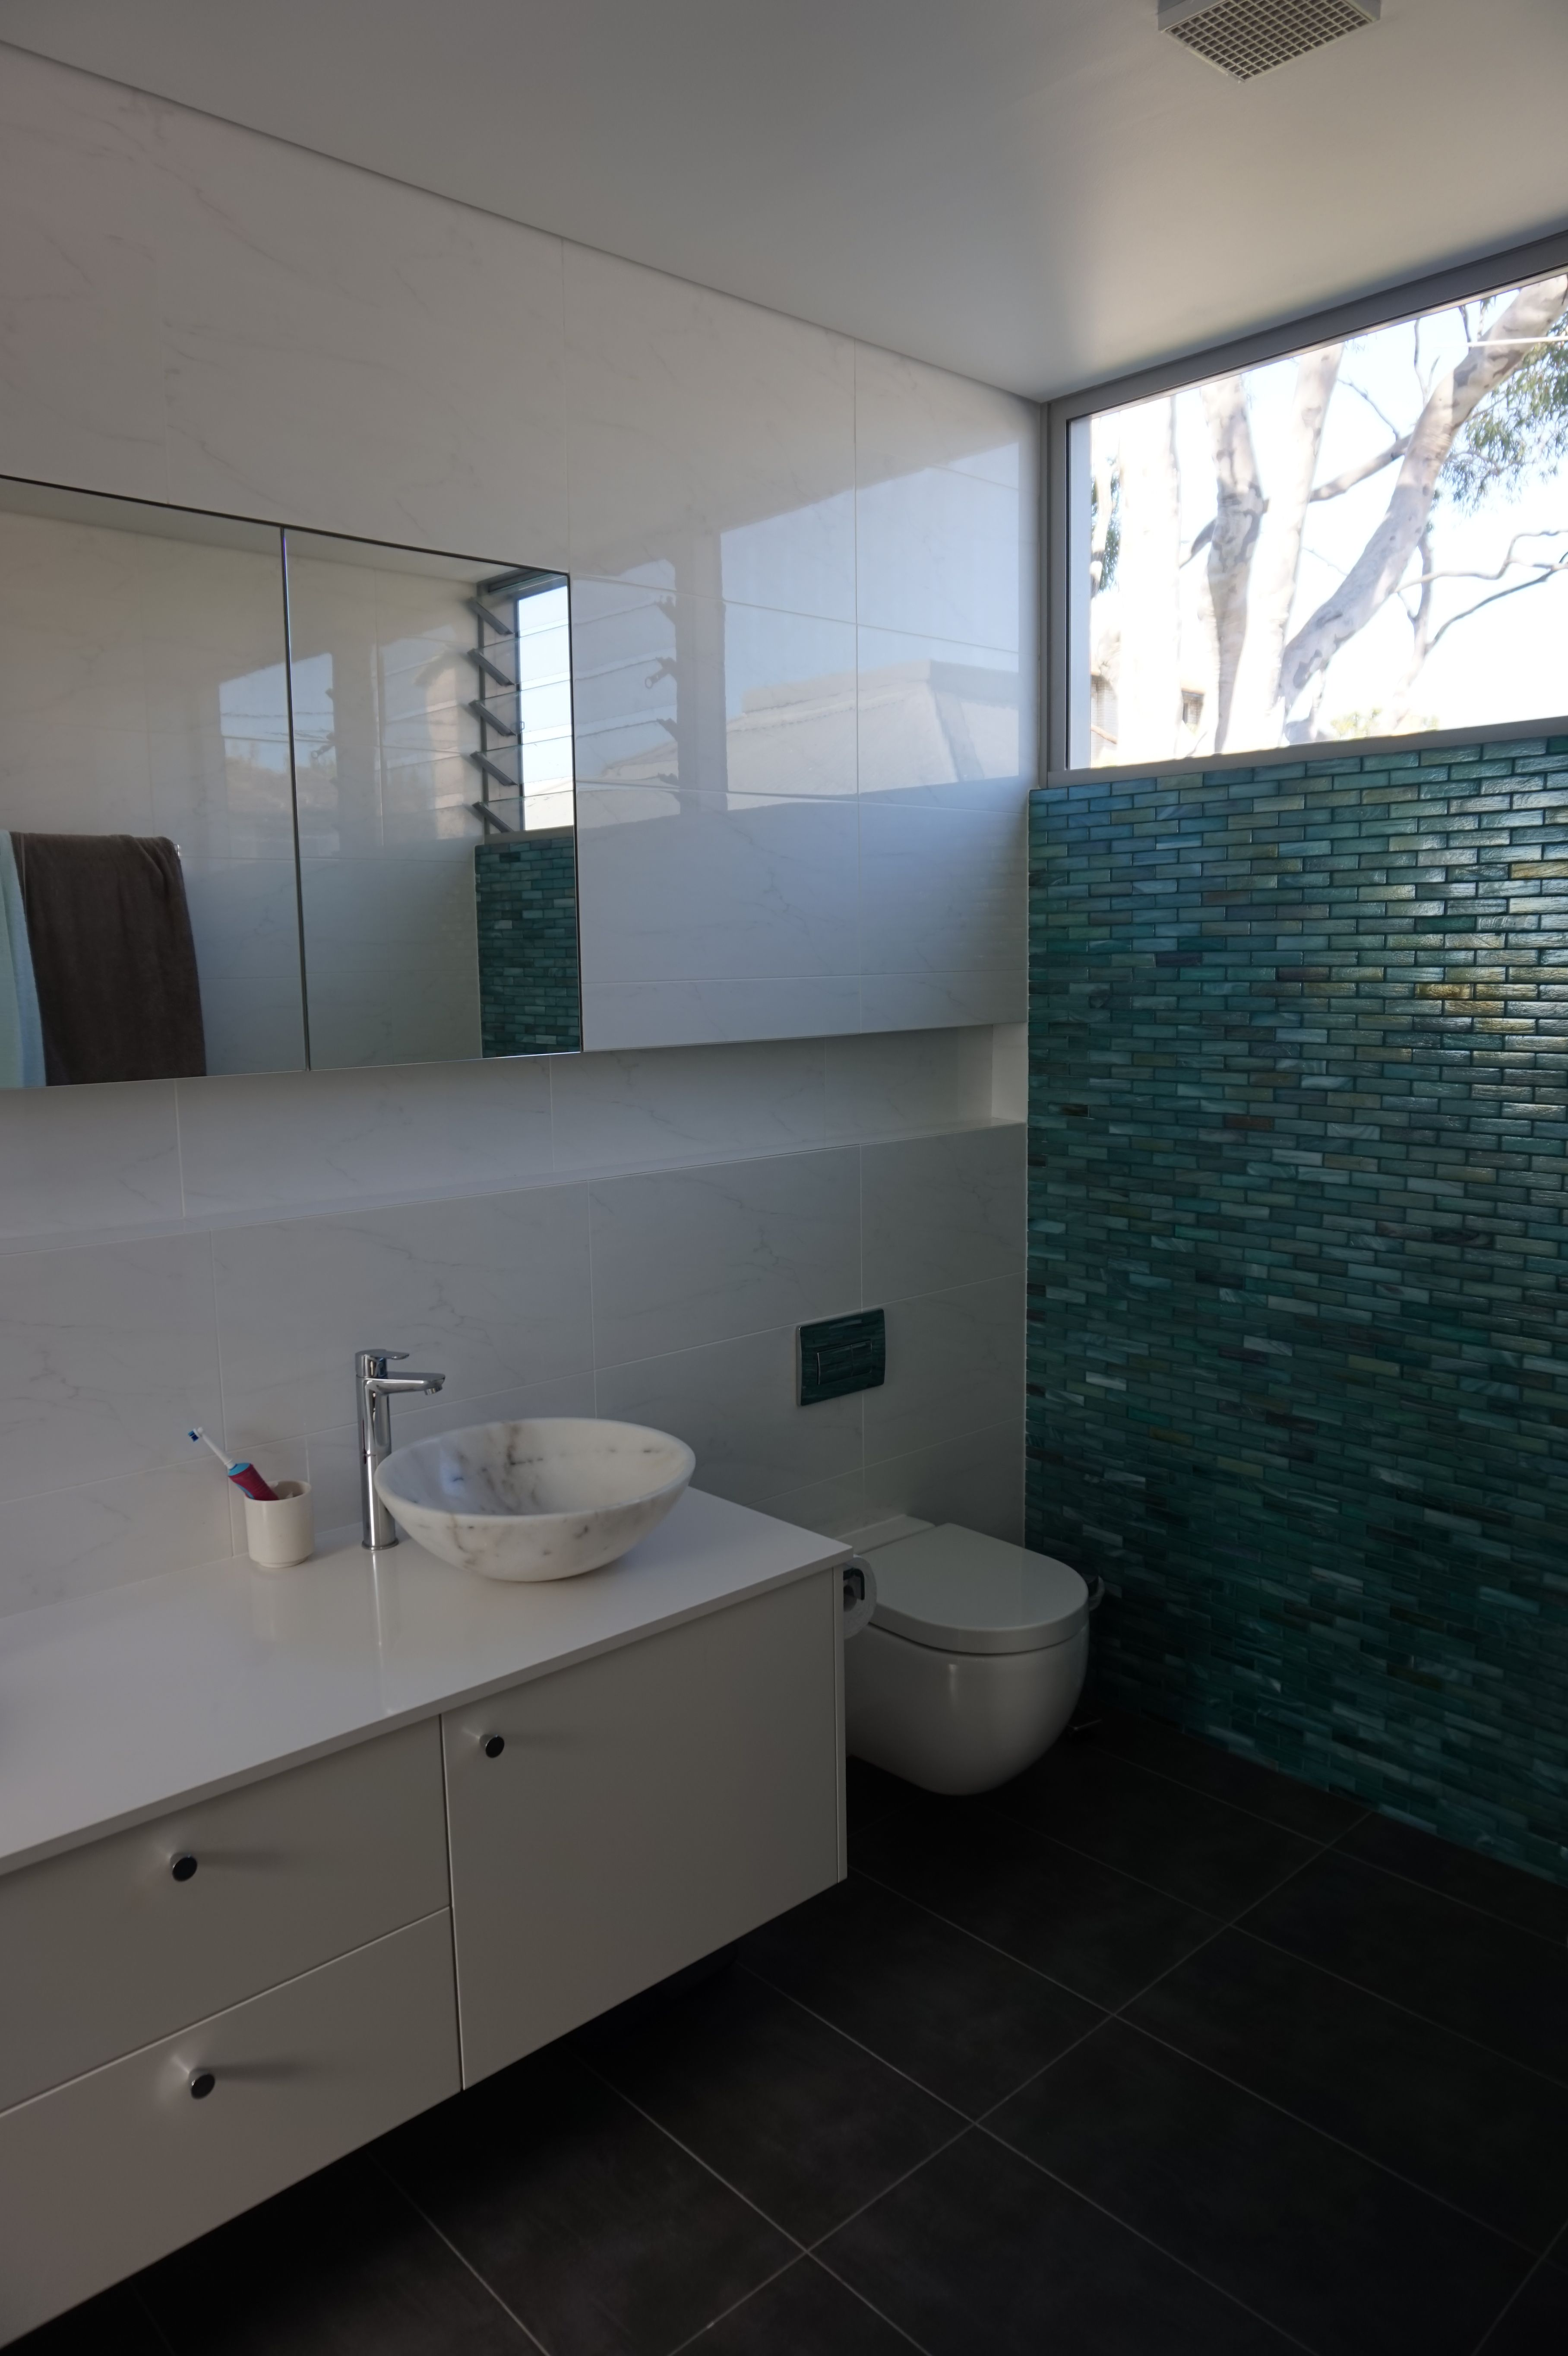 Bathroom renovations hornsby - Ensuite Bathroom Wall Hung Vanity Concealed Cistern Mirror Shaving Cabinet And Recessed Space